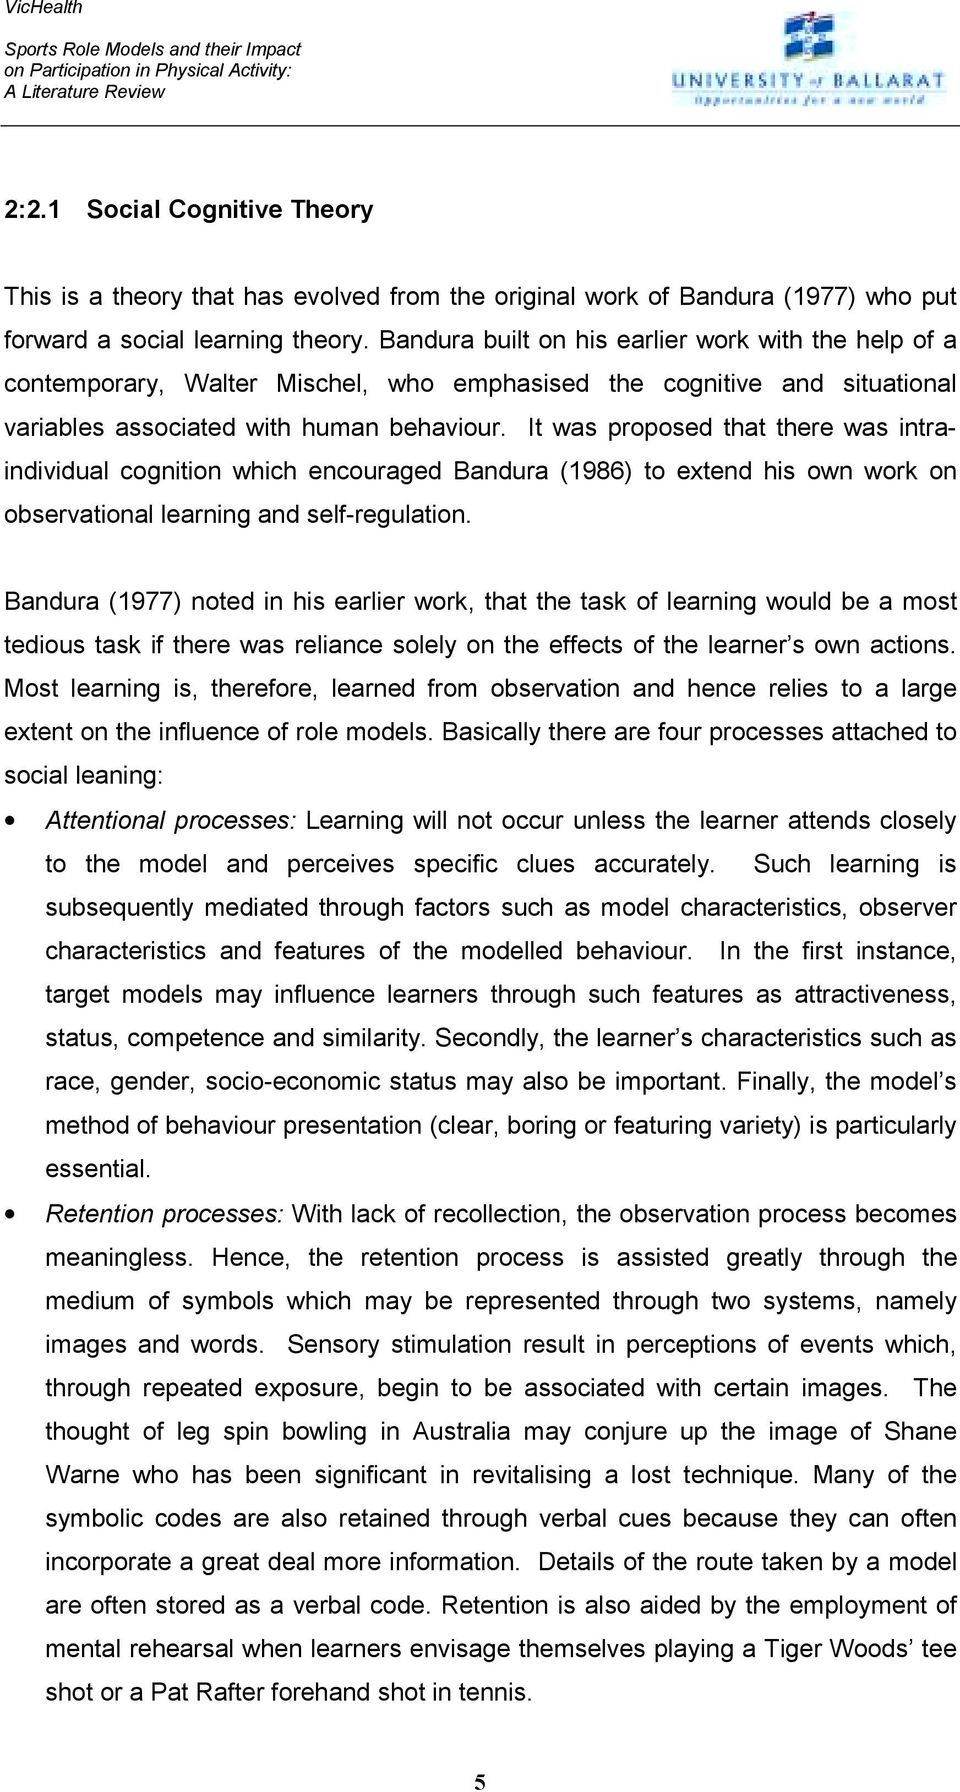 It was proposed that there was intraindividual cognition which encouraged Bandura (1986) to extend his own work on observational learning and self-regulation.